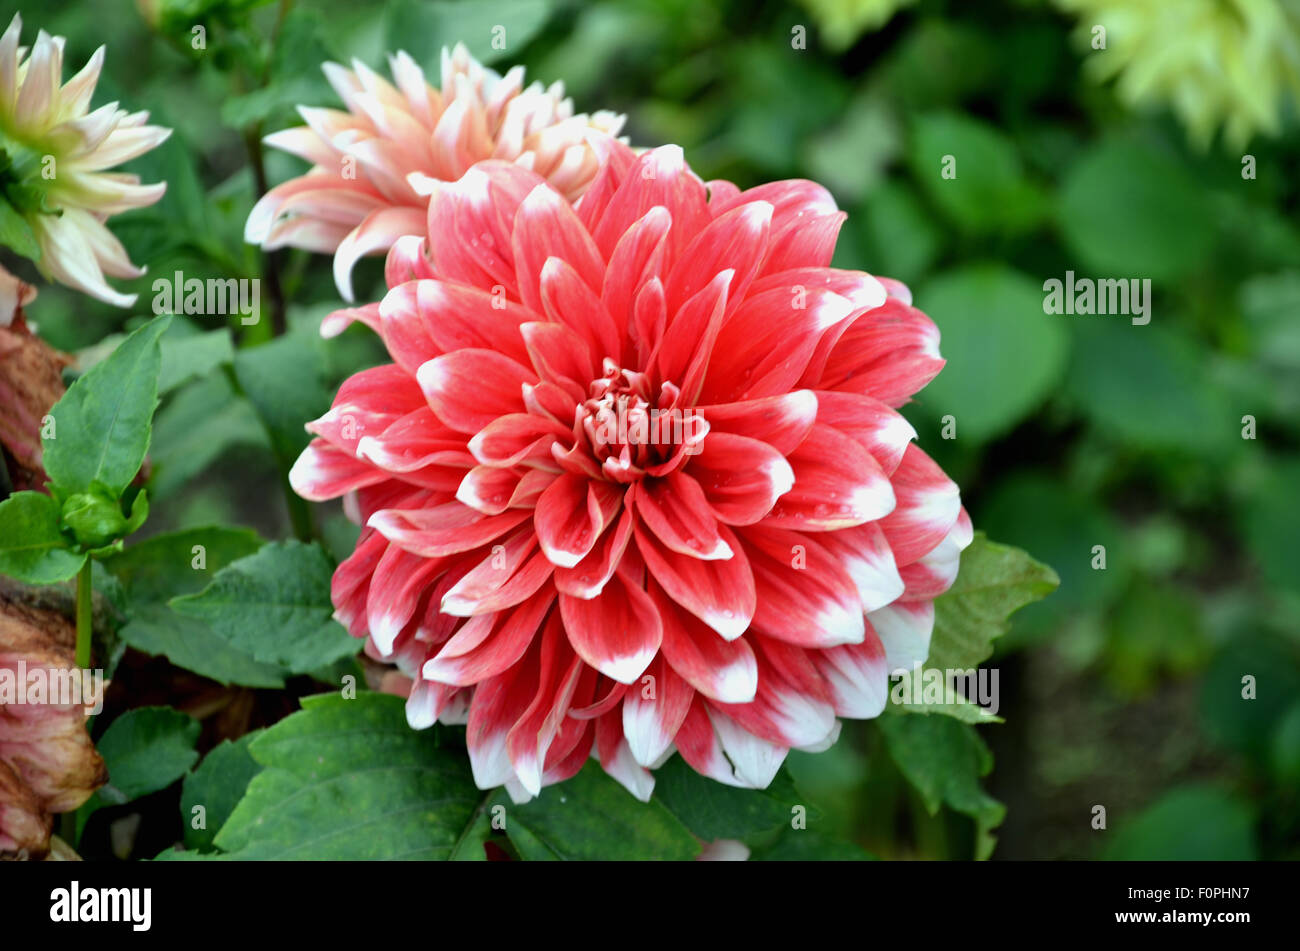 Dalia flowers stock photos dalia flowers stock images alamy beautiful dalia flowers stock image izmirmasajfo